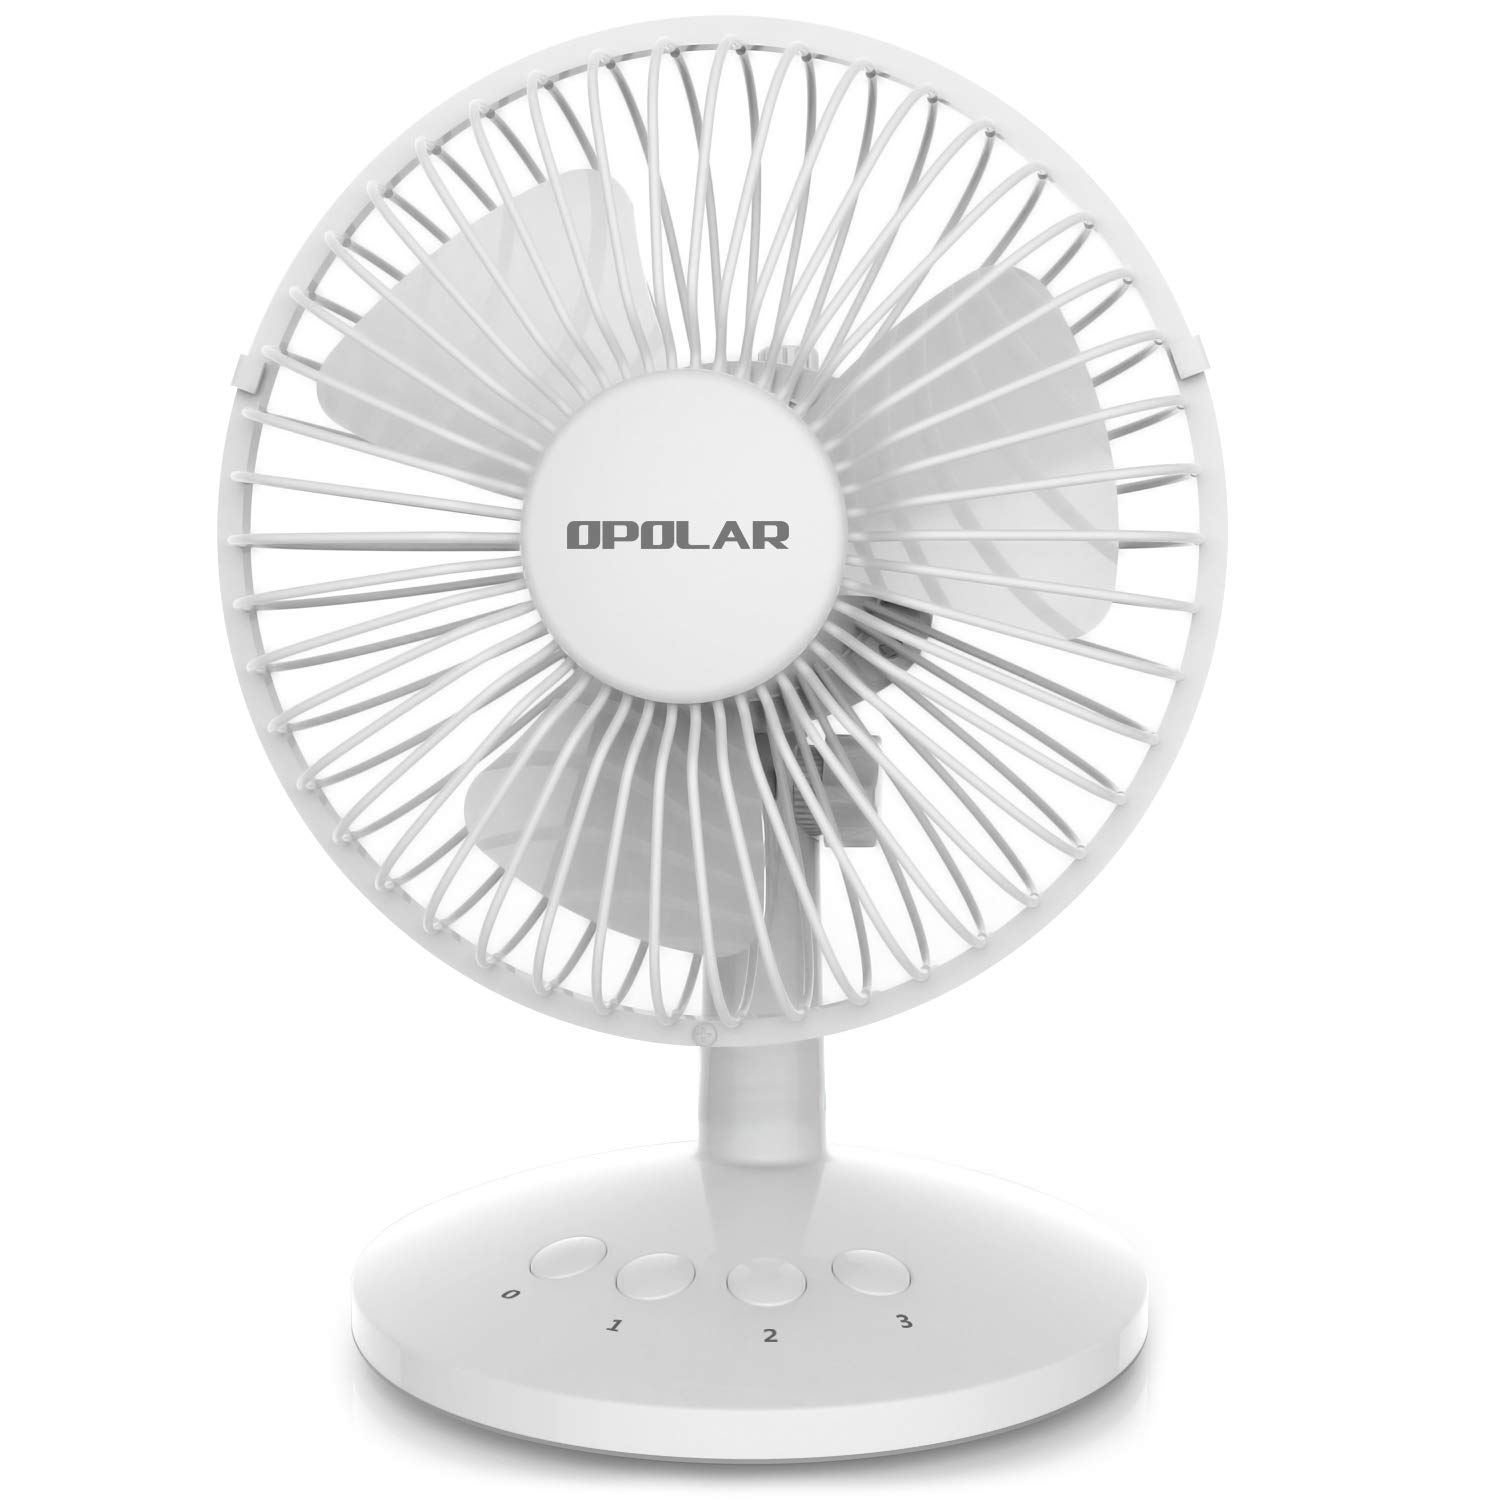 OPOLAR First Oscillating Mini Fan, AA Battery (not Included) Operated or USB Powered, Portable Table Fan, 3 Speeds, Adjustable Head, Enhanced Airflow and Low Noise, Personal Office Fan for Home-White by OPOLAR